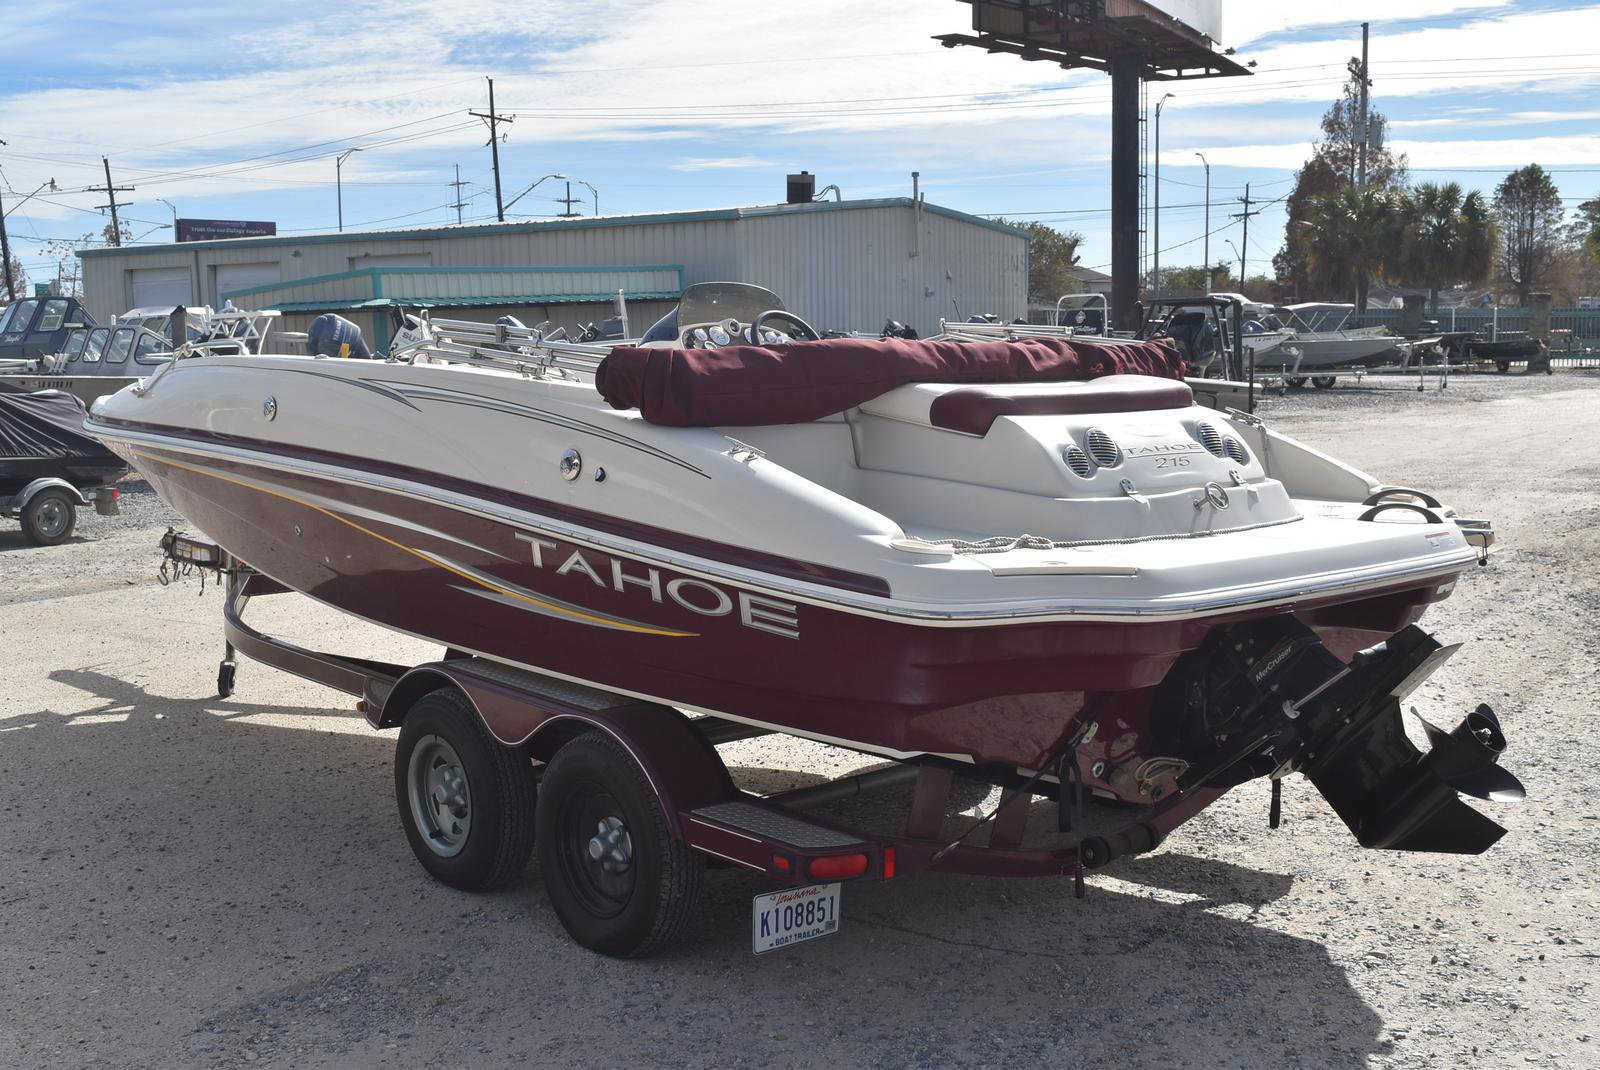 2008 Tahoe boat for sale, model of the boat is 215 & Image # 4 of 20